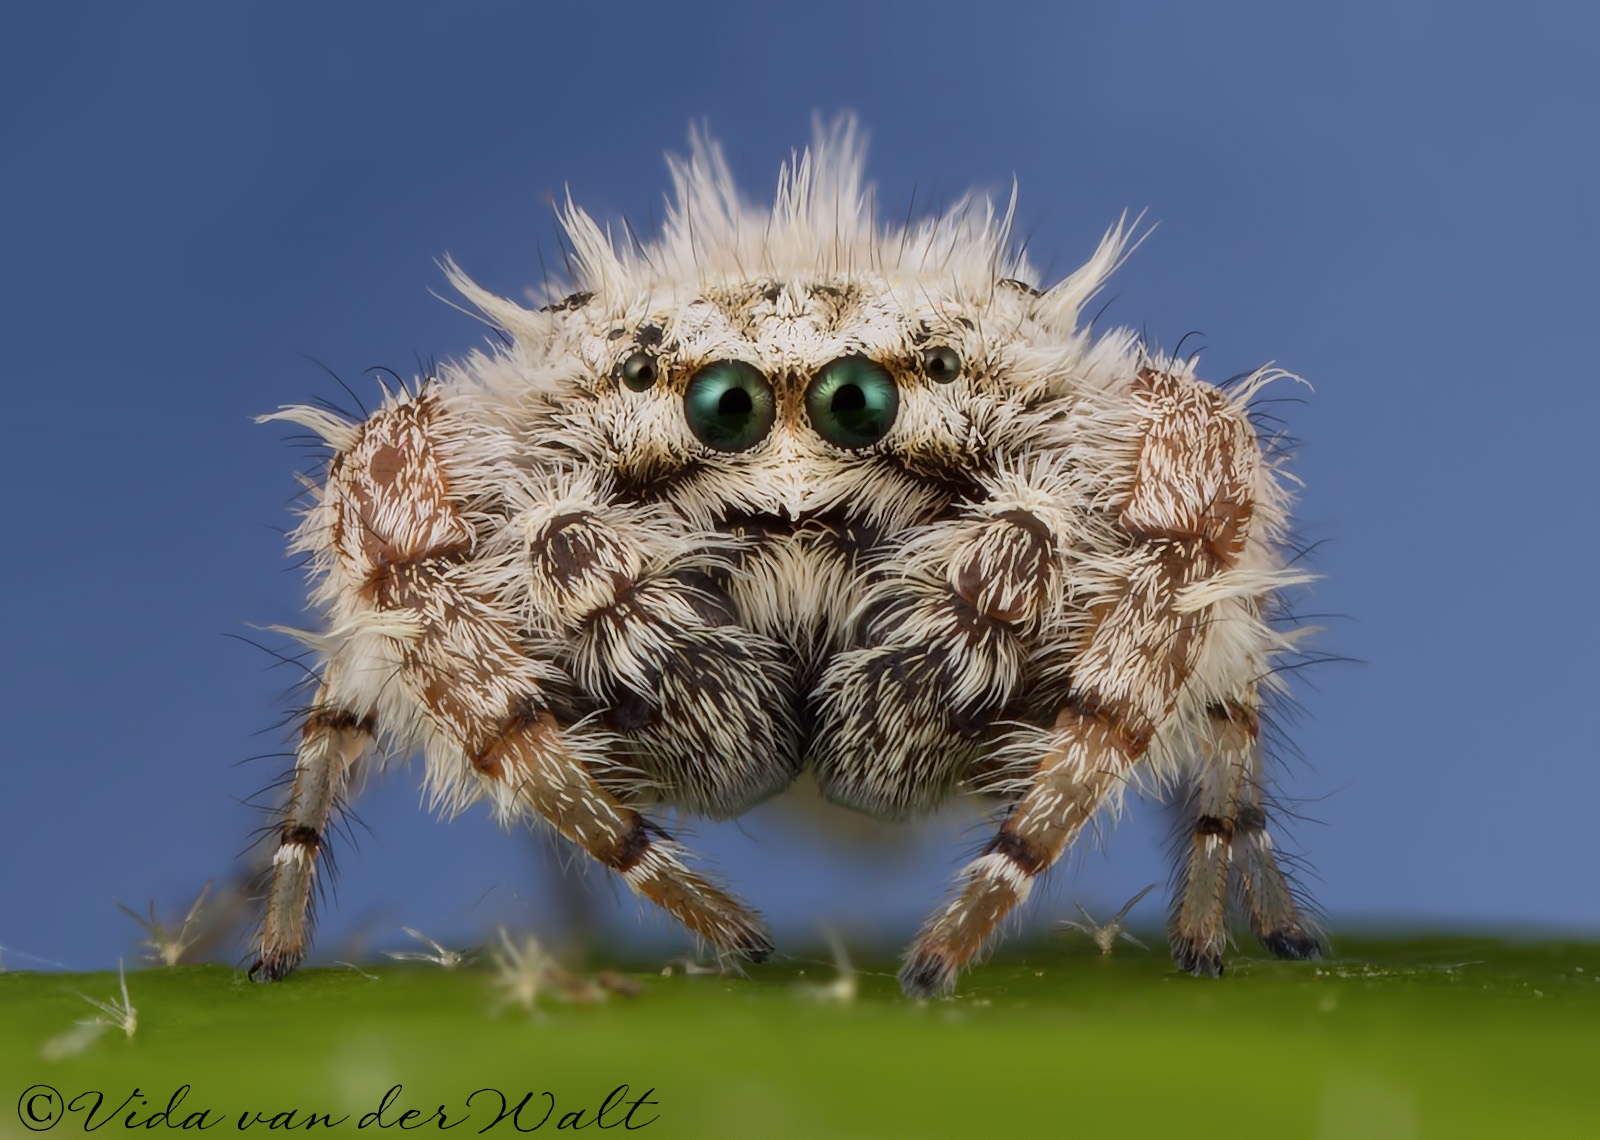 http://jumpingspiders.co.za/images/main/182.jpg